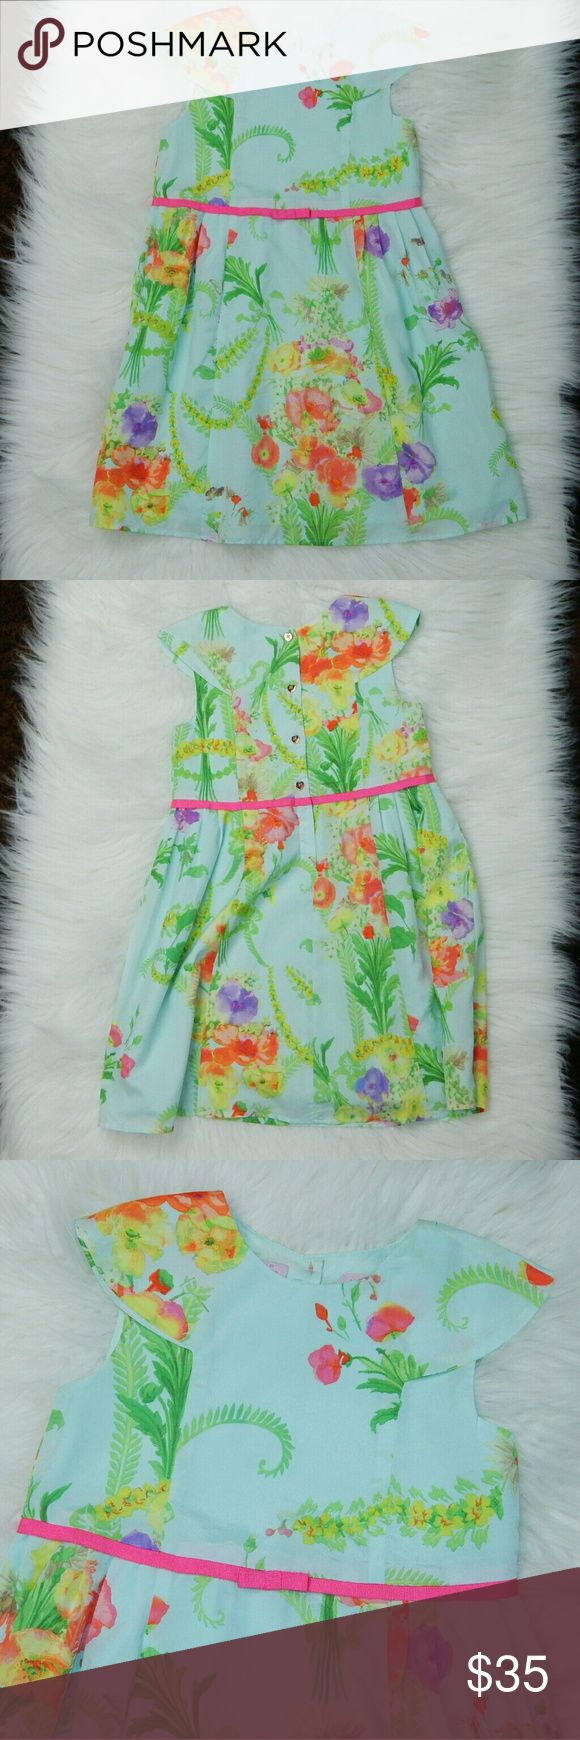 """Baker by Ted Baker Dress Completely adorable floral  sleeveless dress. Fully lined and with cute gold heart buttons down the back. Size marked is 5 years. This equates to a child approximately 43"""" tall. 23"""" from shoulder to hem. No trades! EUC Baker by Ted Baker Dresses"""